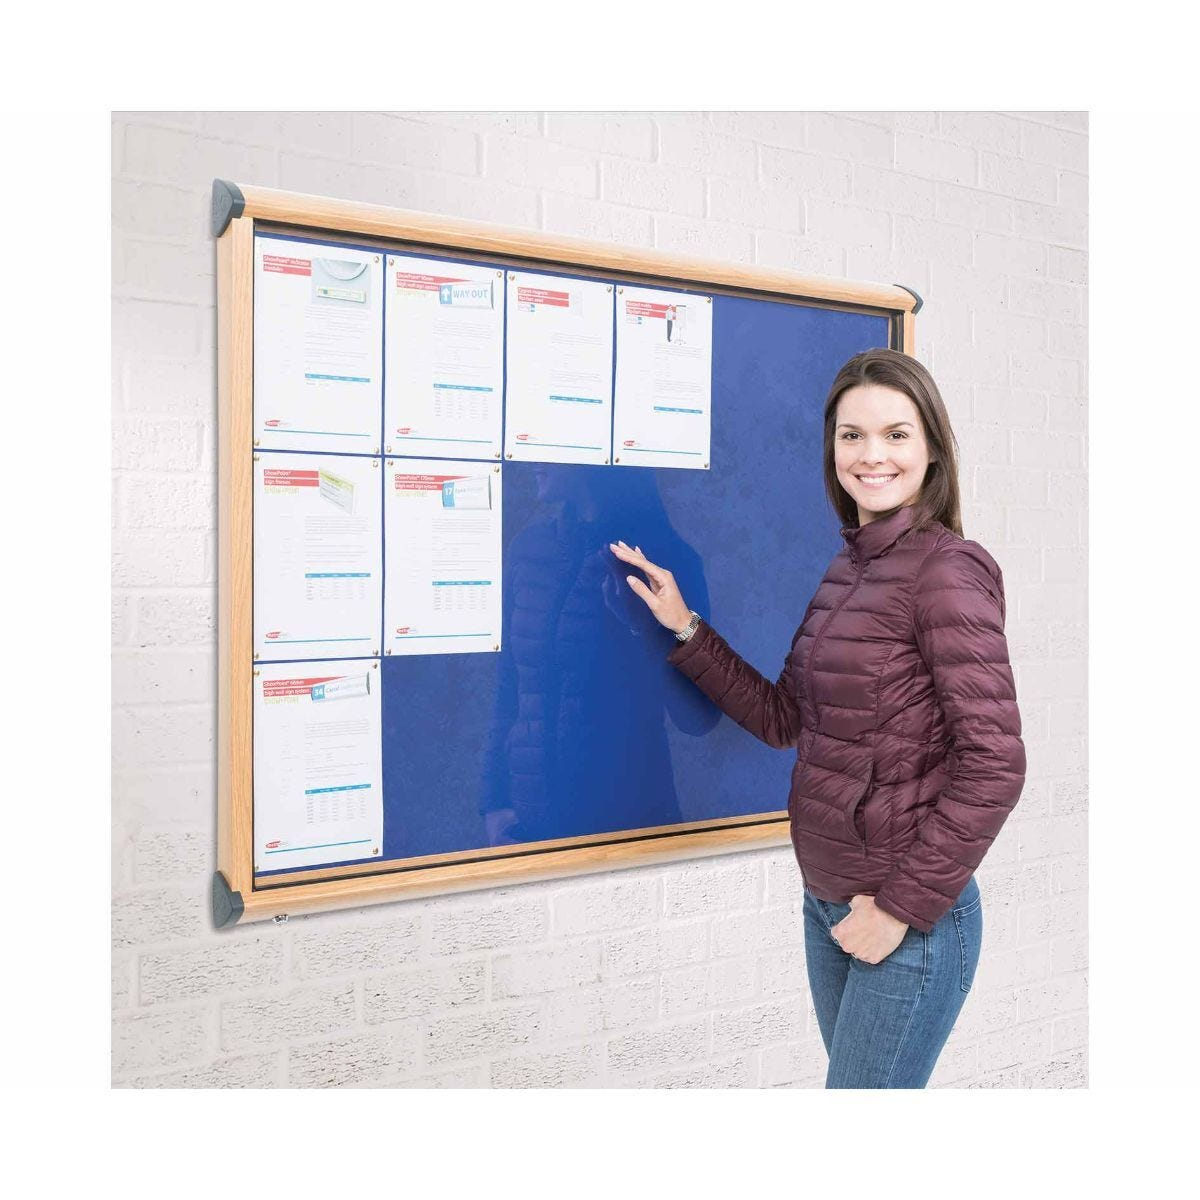 Metroplan Shield Wood Effect Exterior Showcase Display Board Fits 4 x A4 Portrait